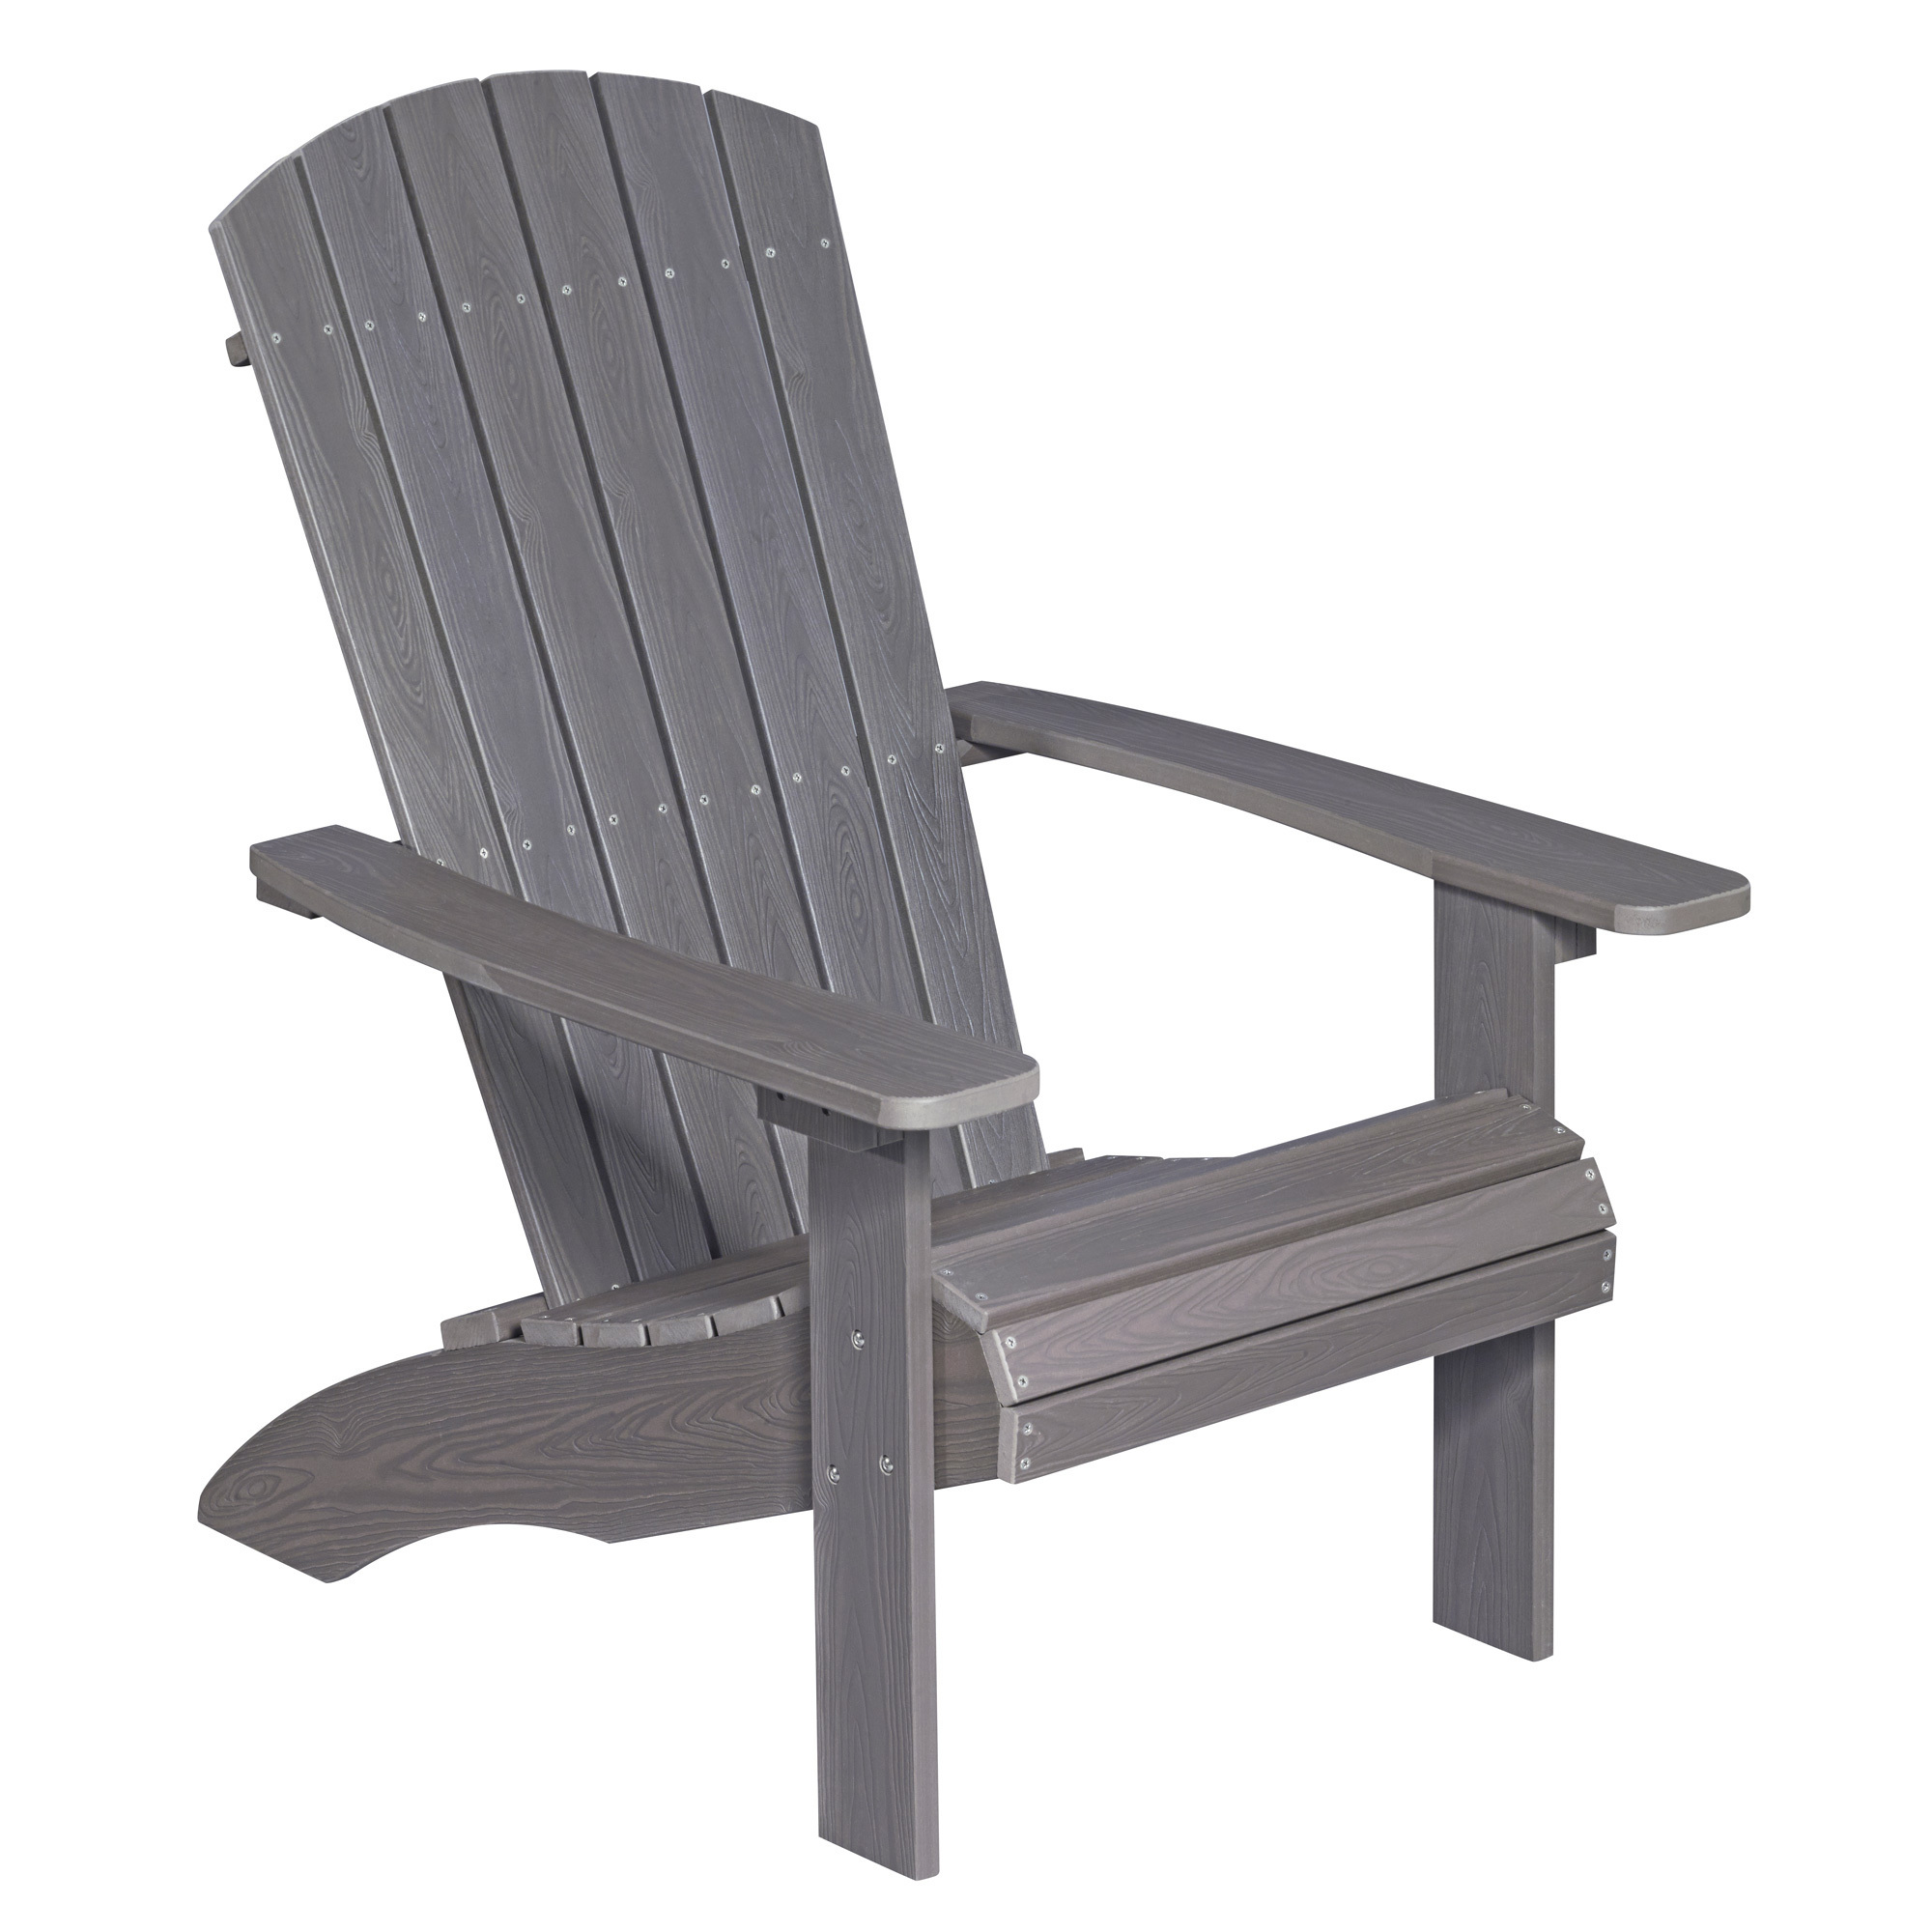 neg adirondack stuhl marcy grau braun westport chair sessel polywood kunststoff ebay. Black Bedroom Furniture Sets. Home Design Ideas